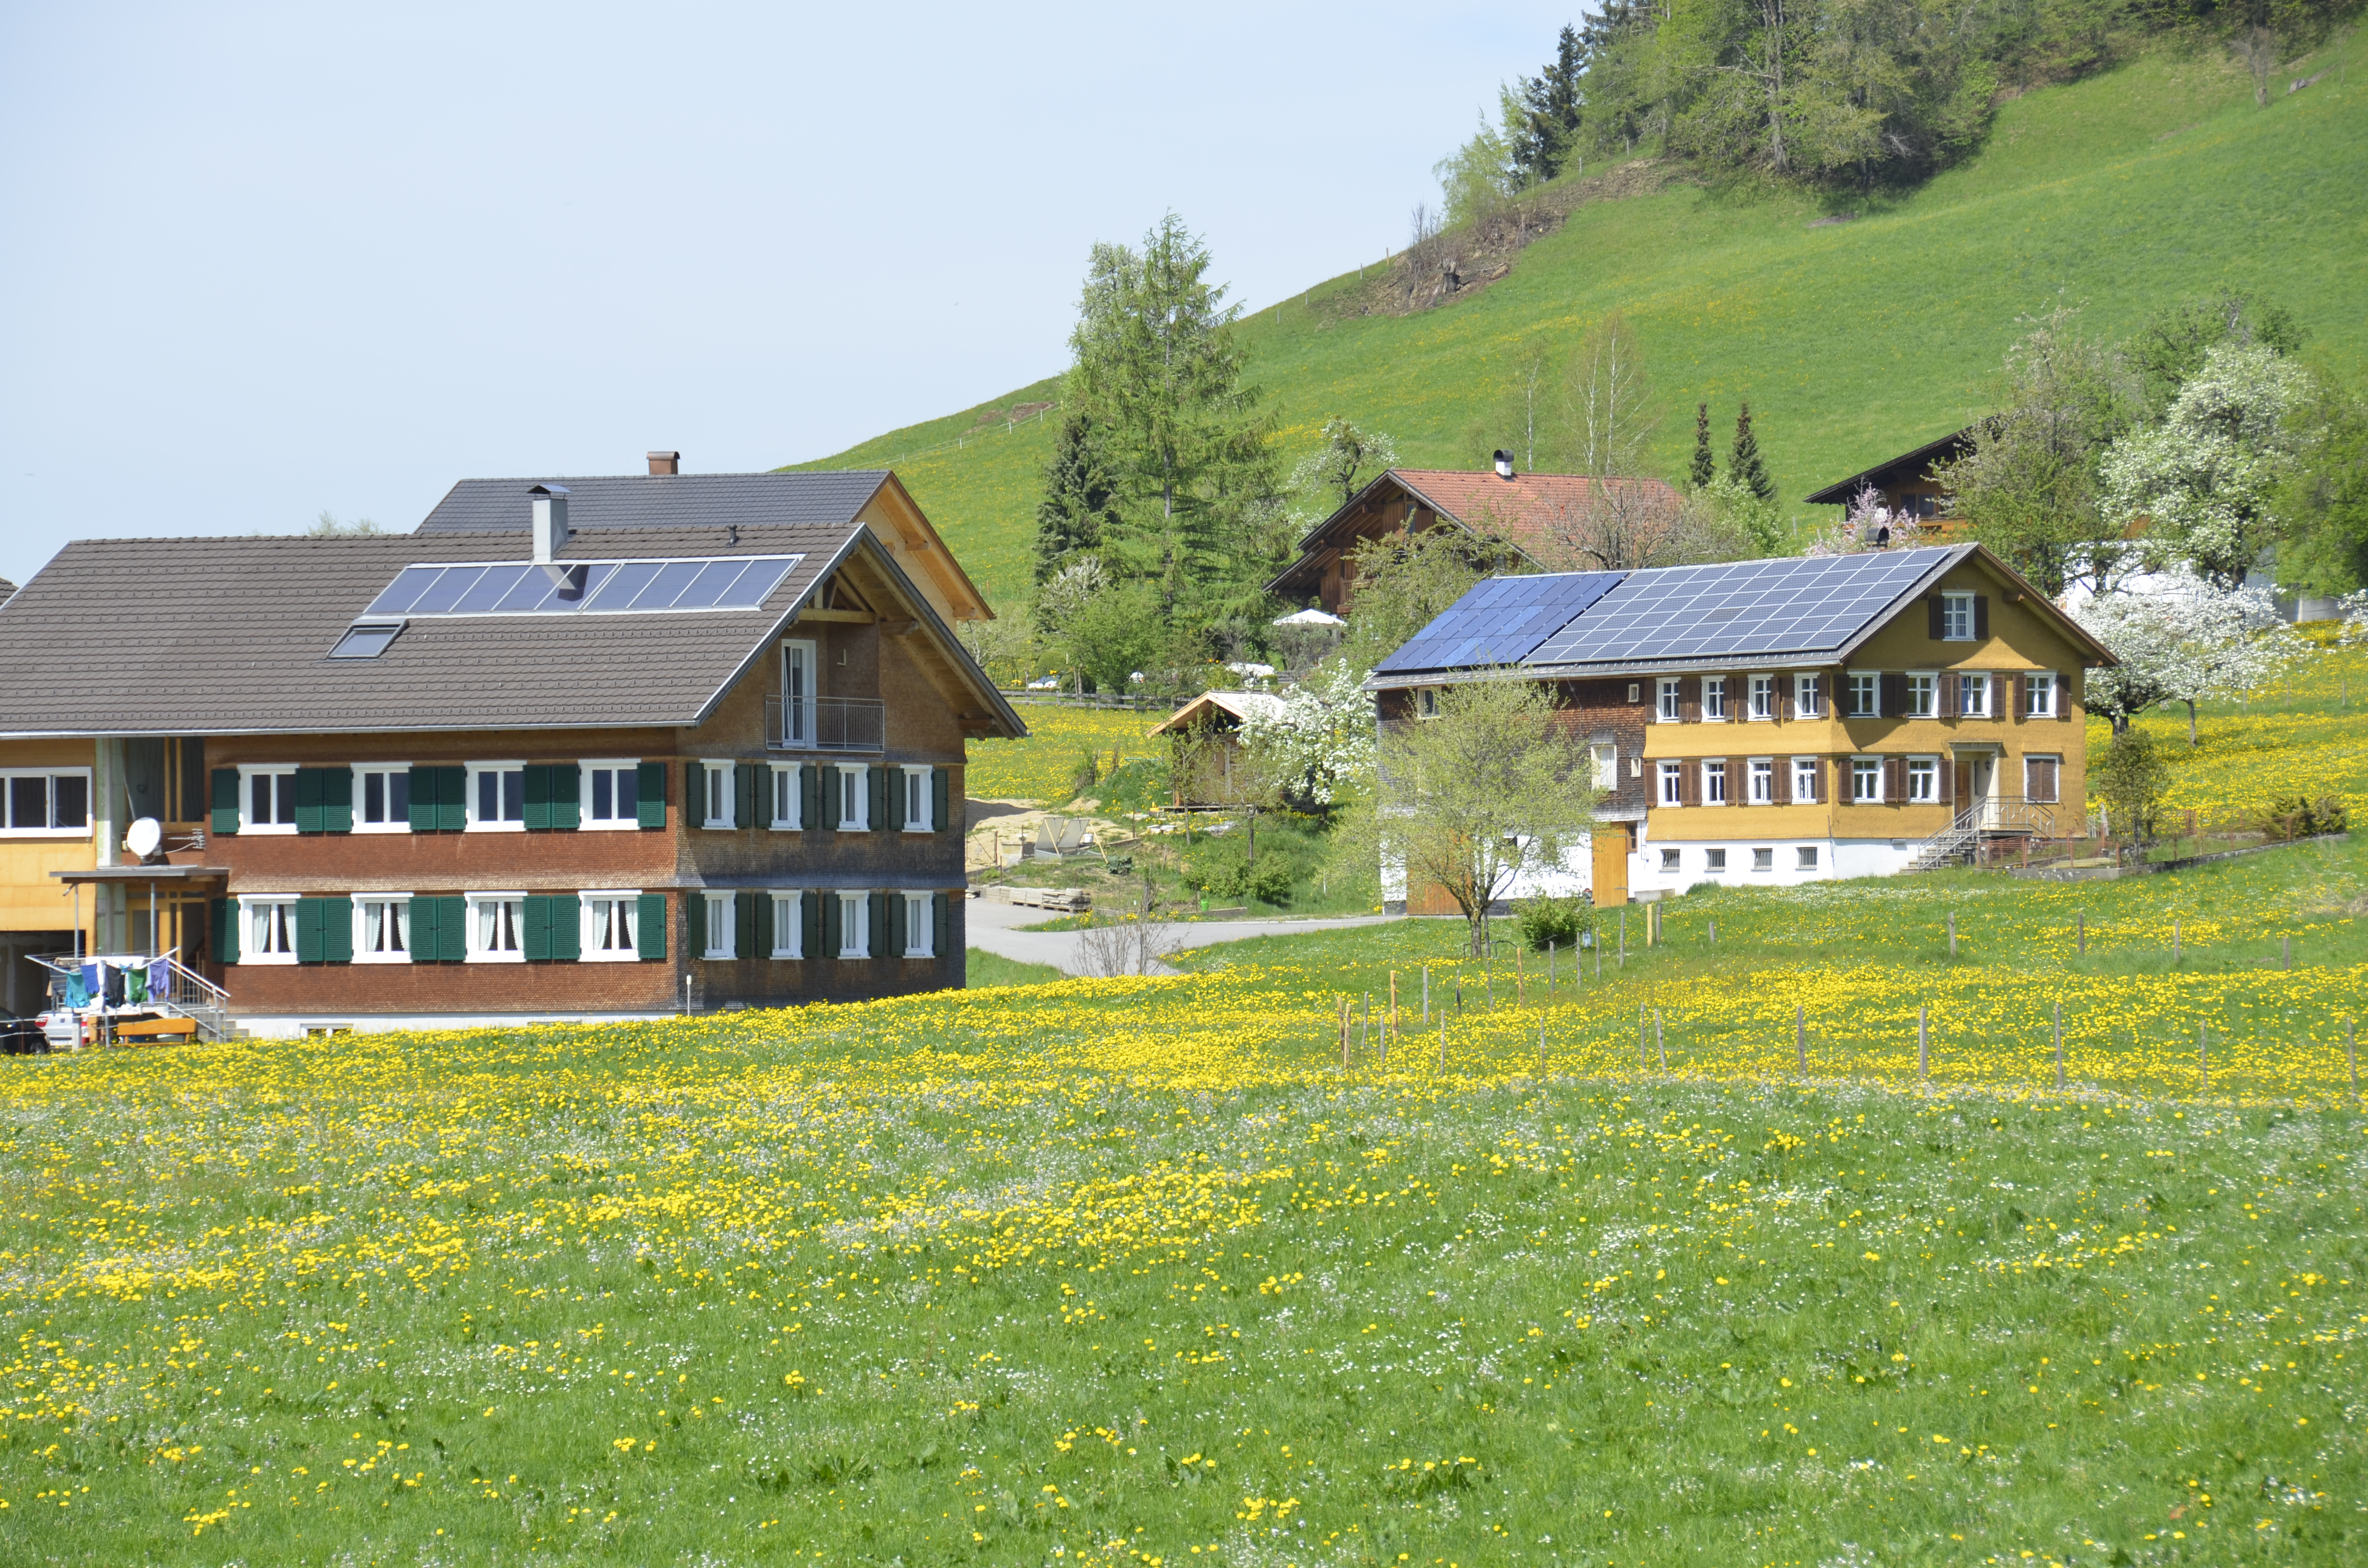 photovoltaik oder solaranlage energieinstitut vorarlberg. Black Bedroom Furniture Sets. Home Design Ideas